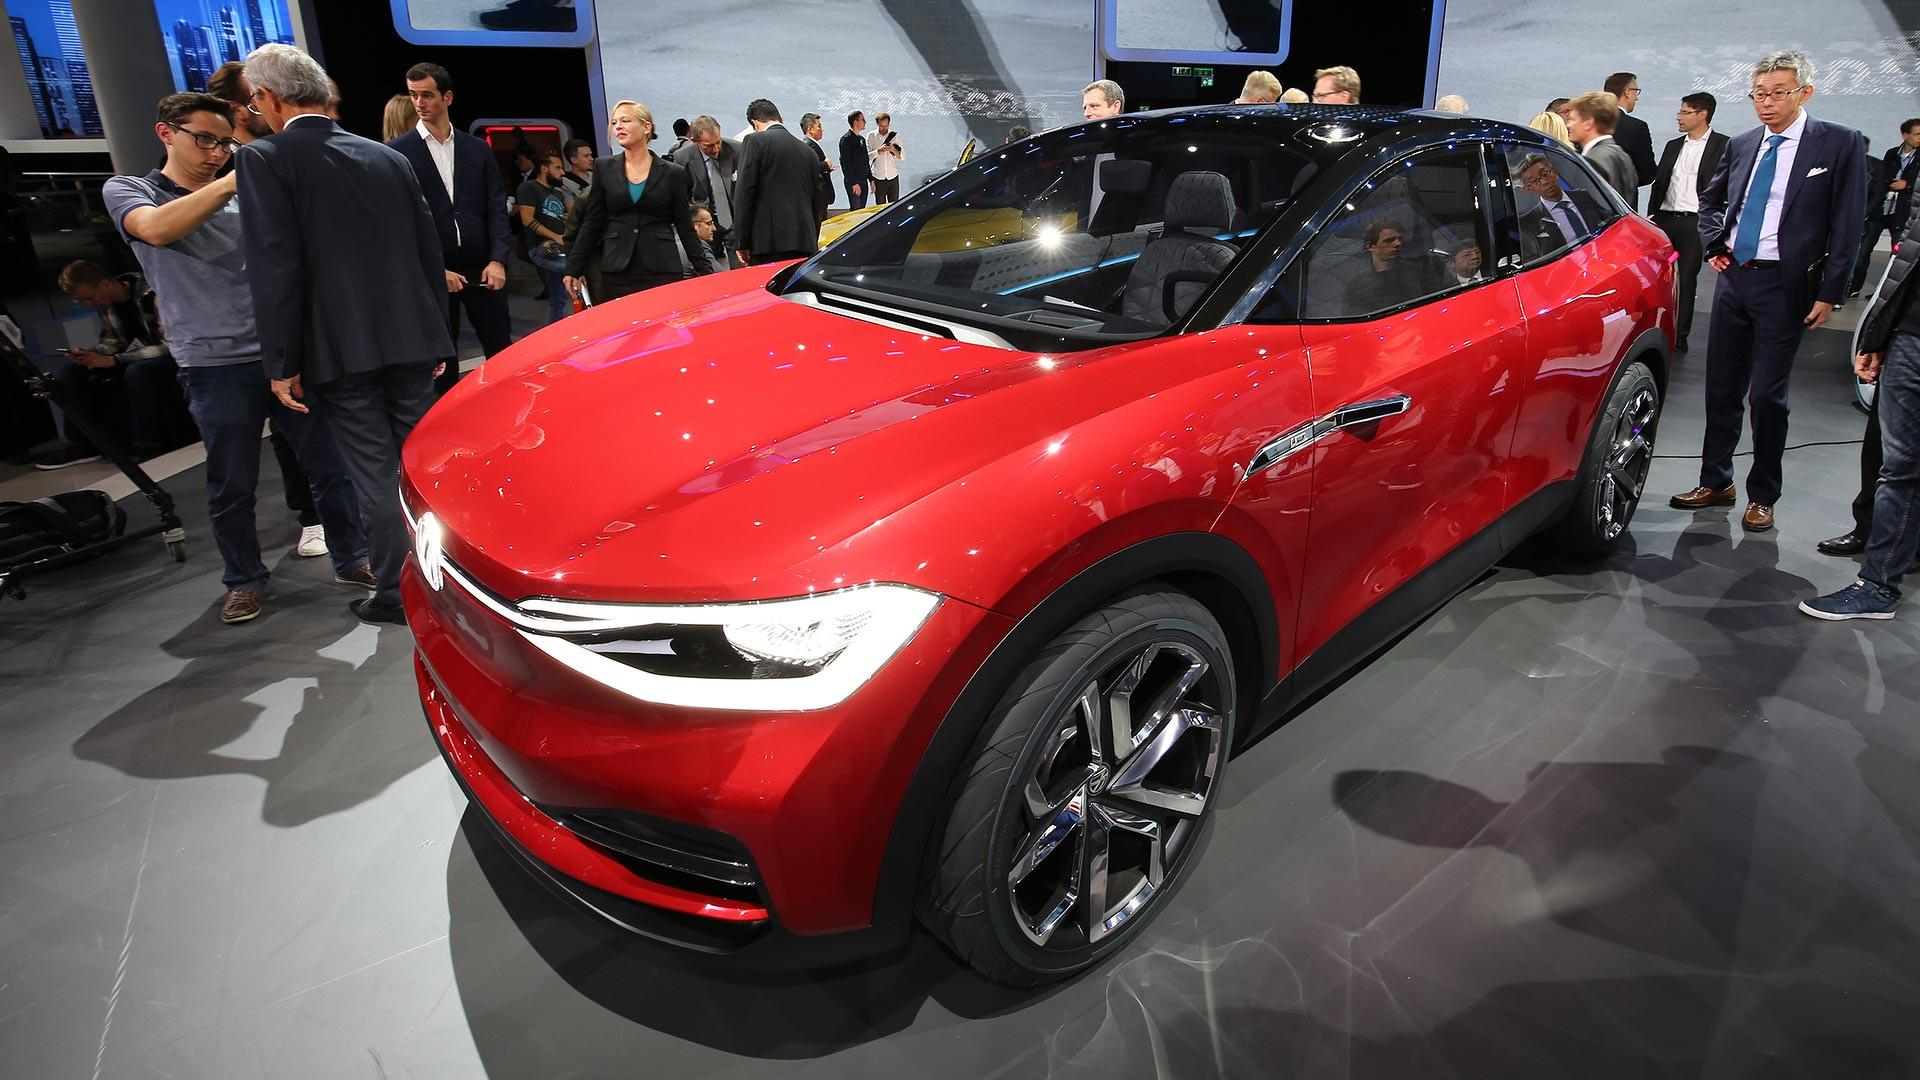 VW ID Crozz Electric Crossover SUV: Design, Release >> Vw I D Crozz Ii Concept Imagines More Stylish Electric Cuv